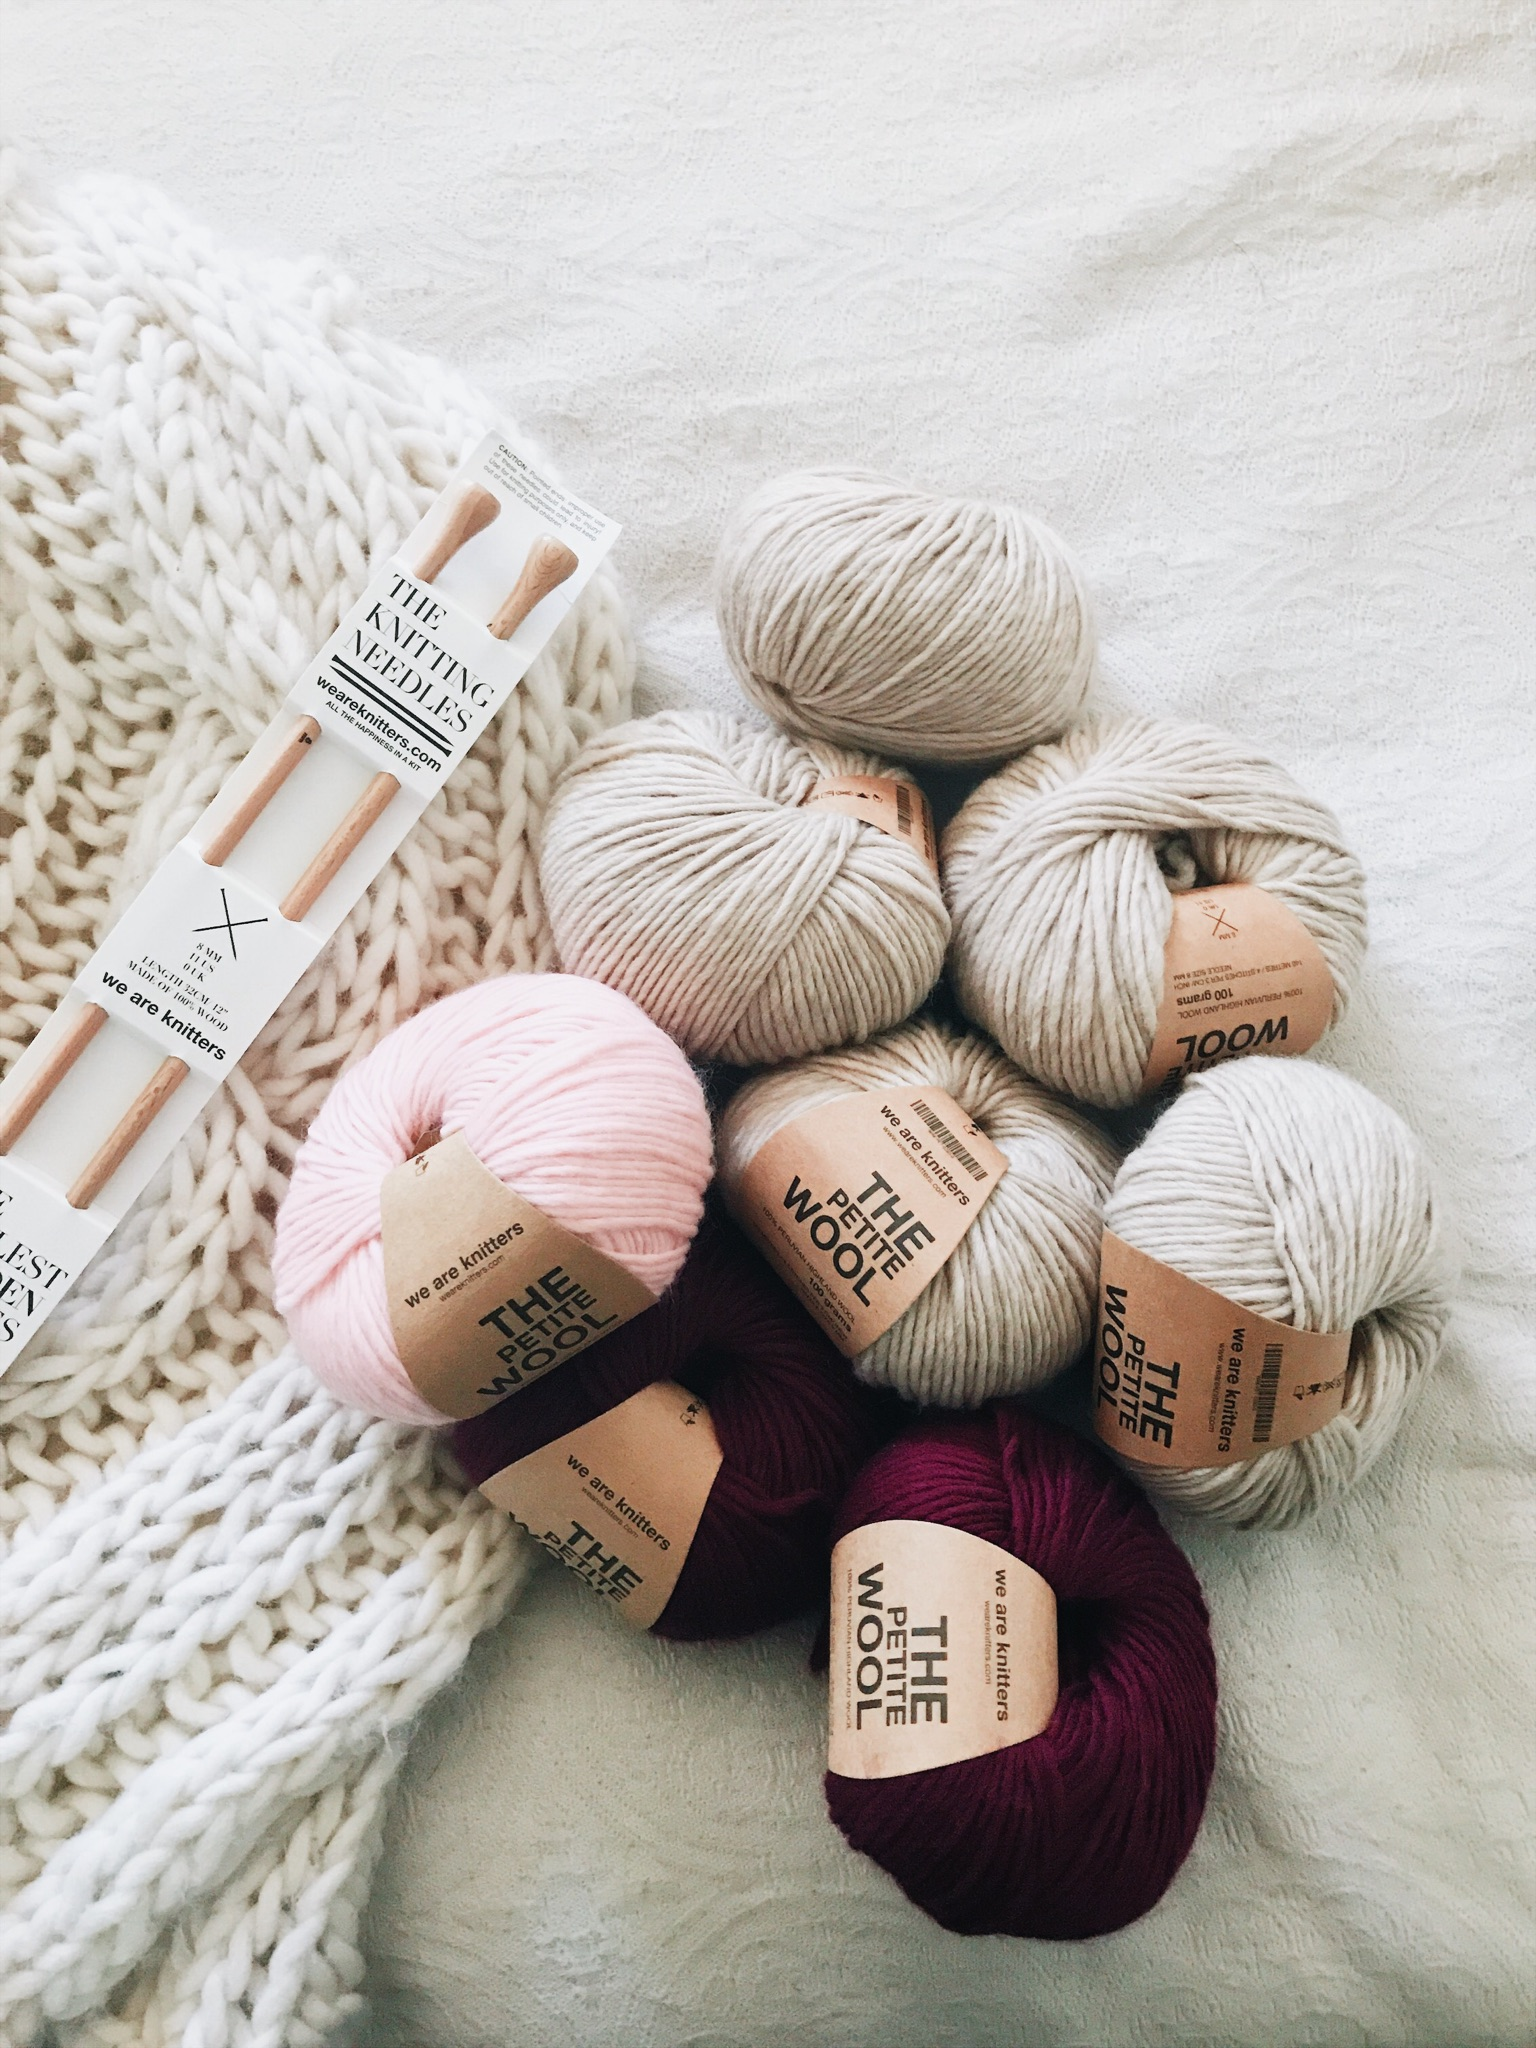 Favorite Fall/Winter Knitting Patterns The Cozie